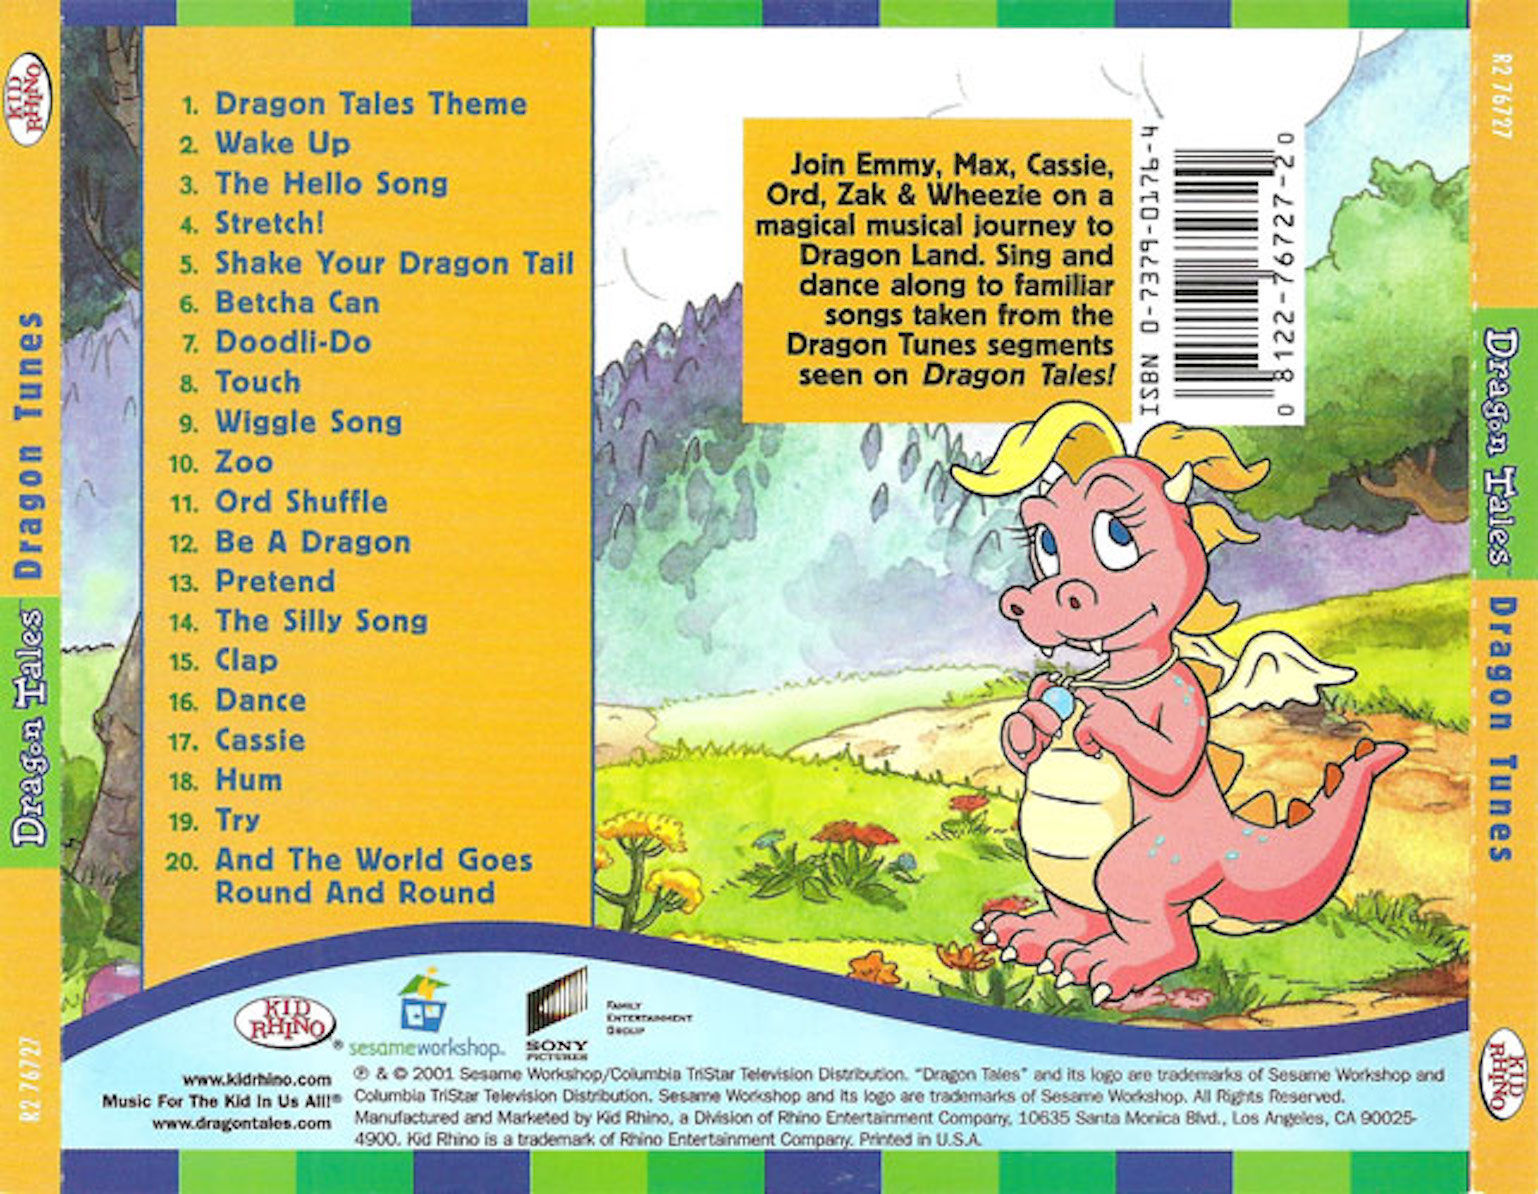 COVERS BOX SK ::: Dragon Tales - Dragon Tunes (2001) - high quality